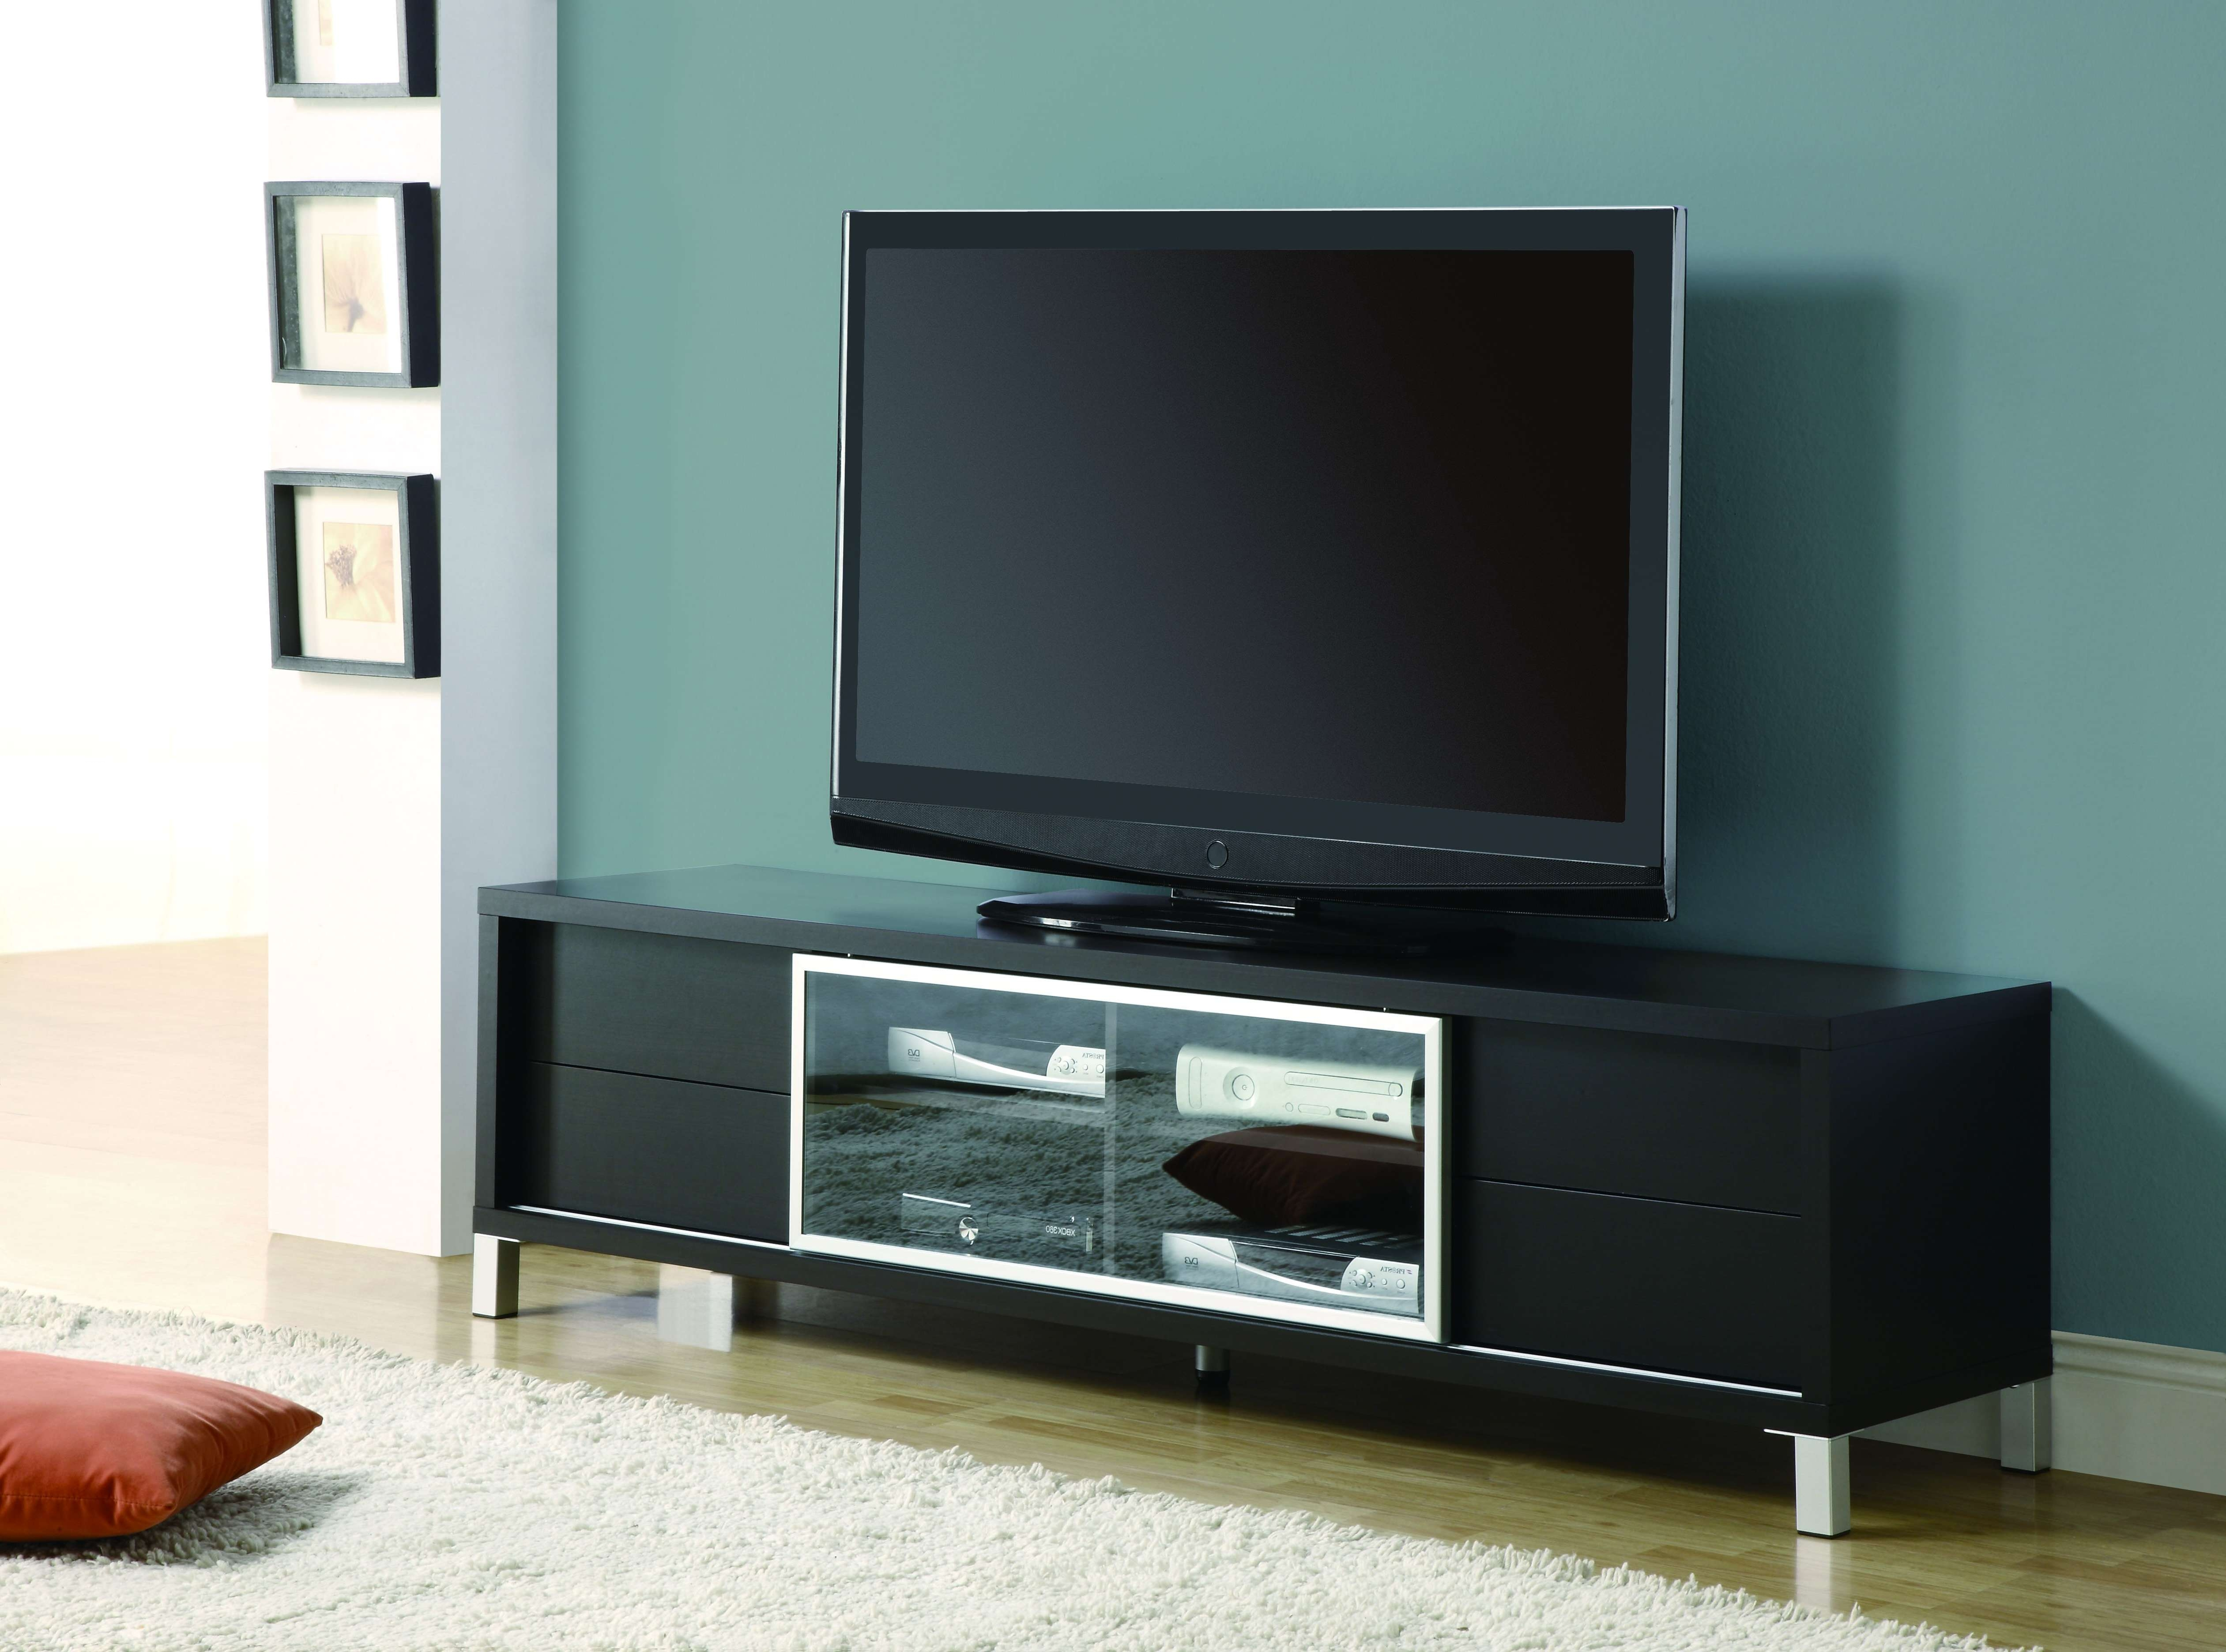 Black Painted Oak Wood Wide Screen Tv Stand Mixed Light Blue Wall Intended For Modern Tv Stands For Flat Screens (View 1 of 15)